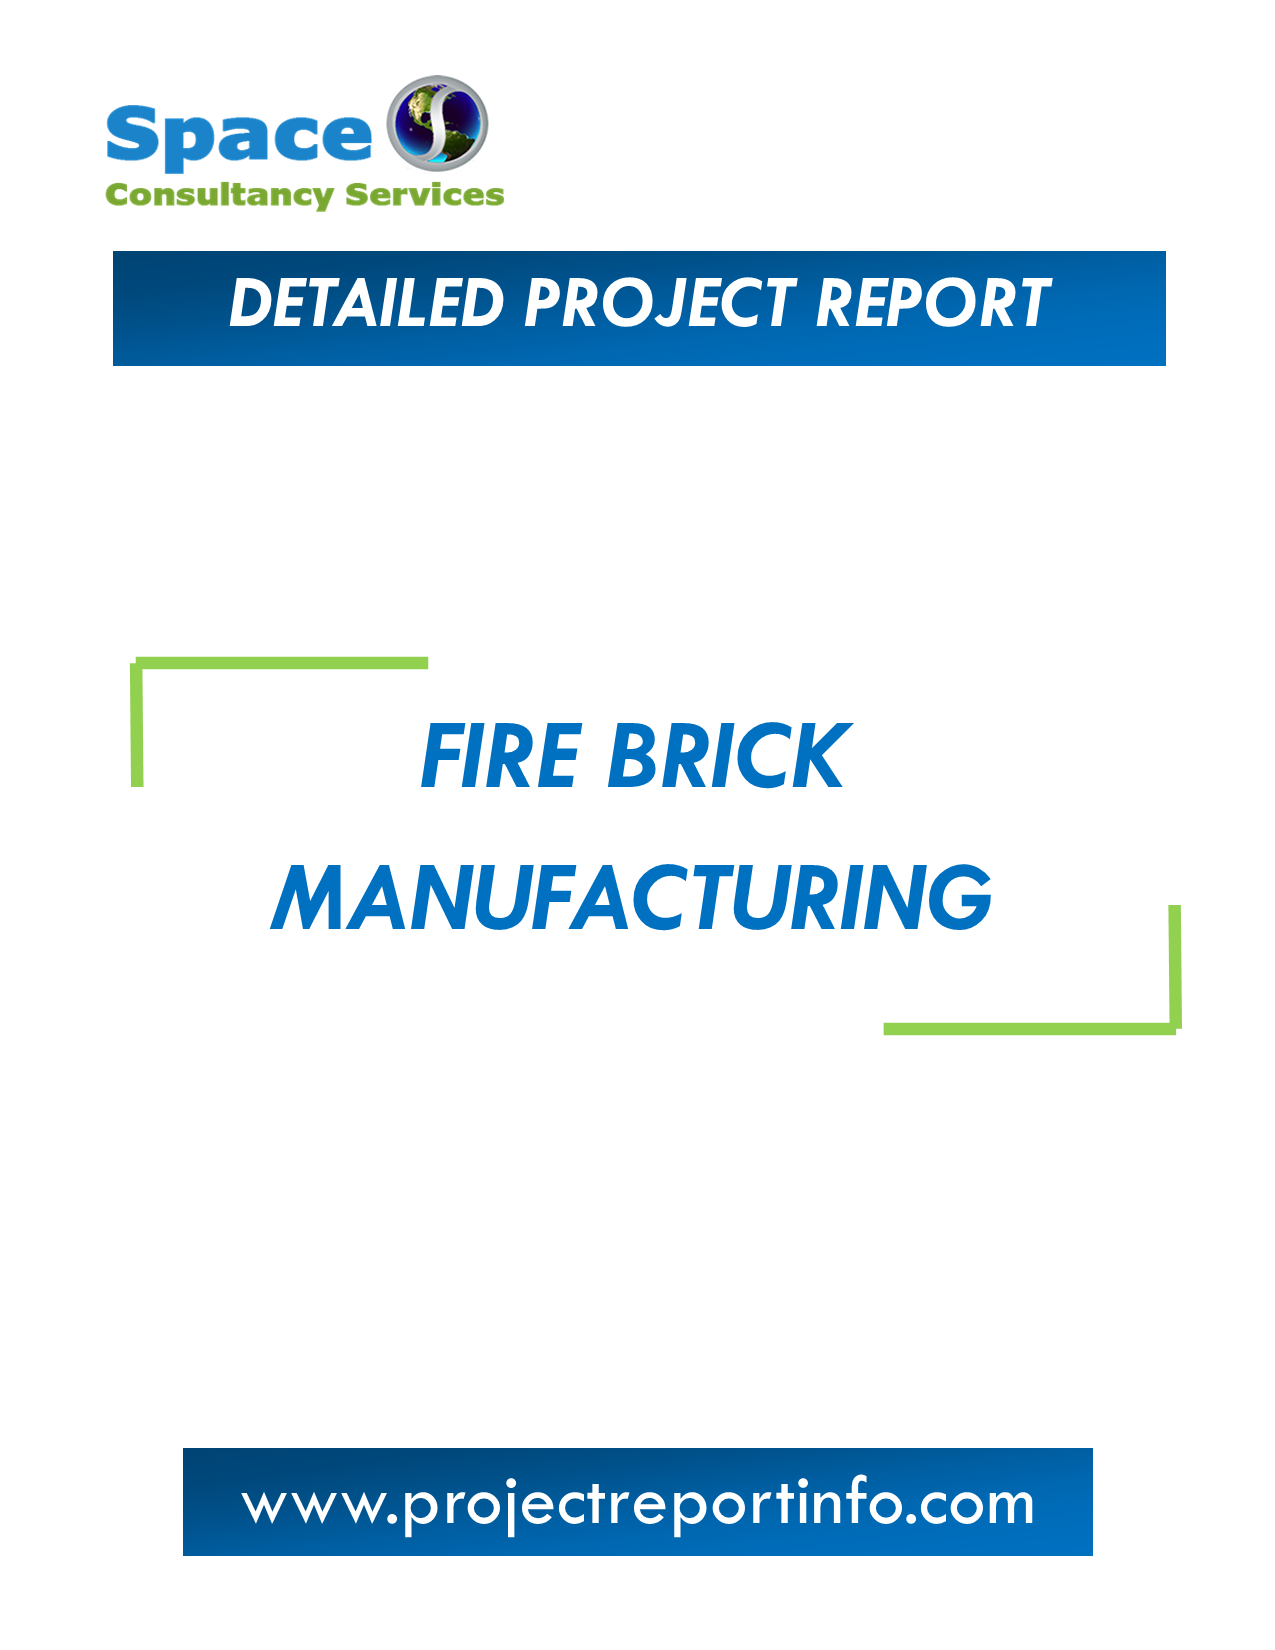 Project Report on Fire Bricks Manufacturing